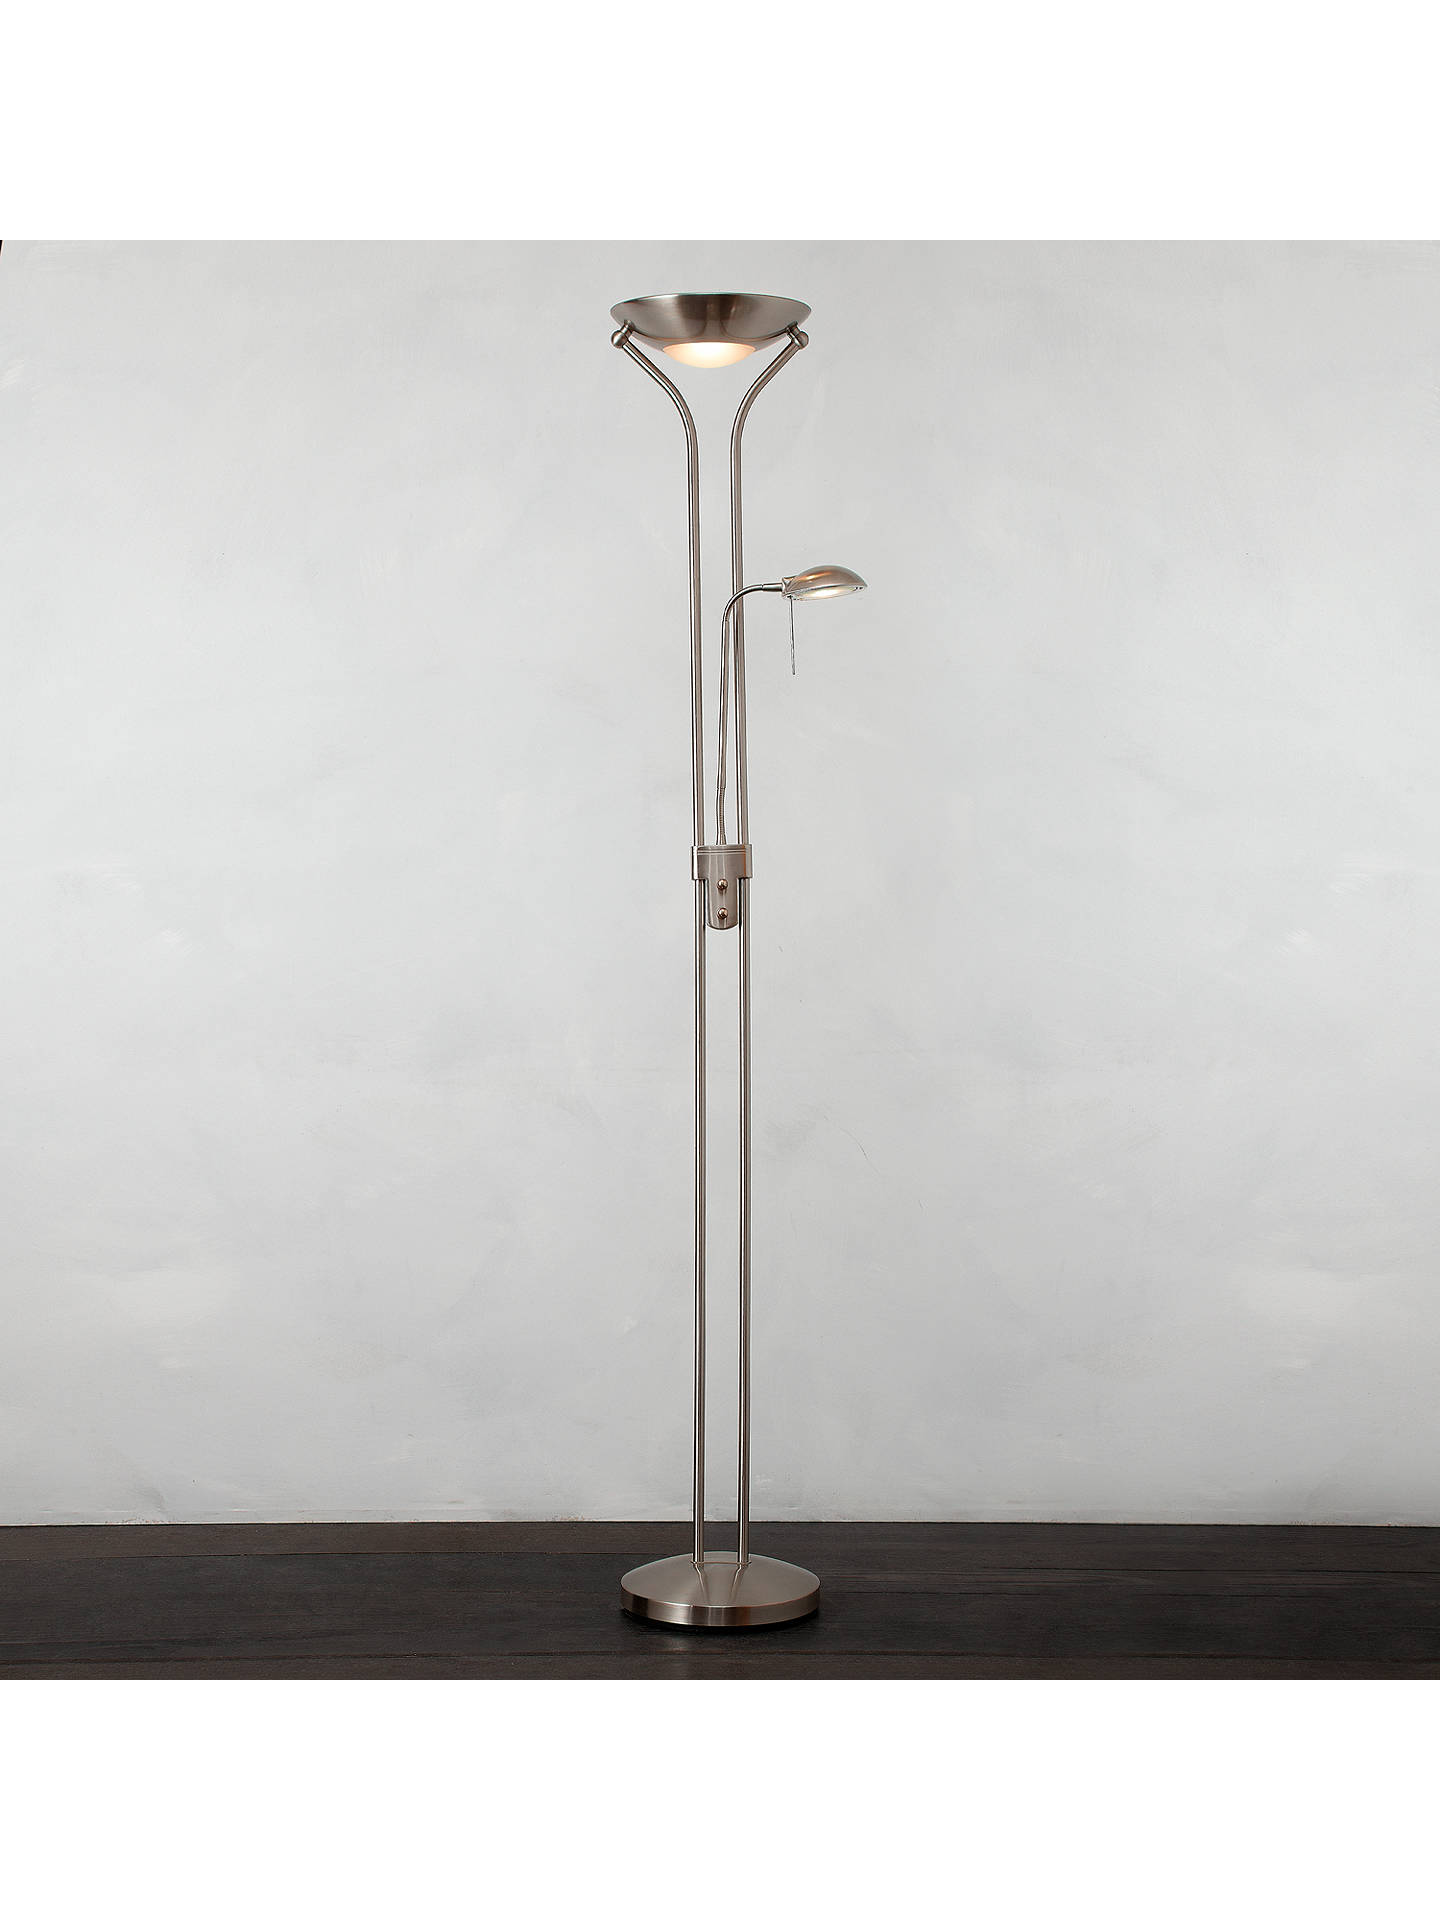 BuyJohn Lewis & Partners Zella Uplighter Floor Lamp, Stainless Steel Online at johnlewis.com